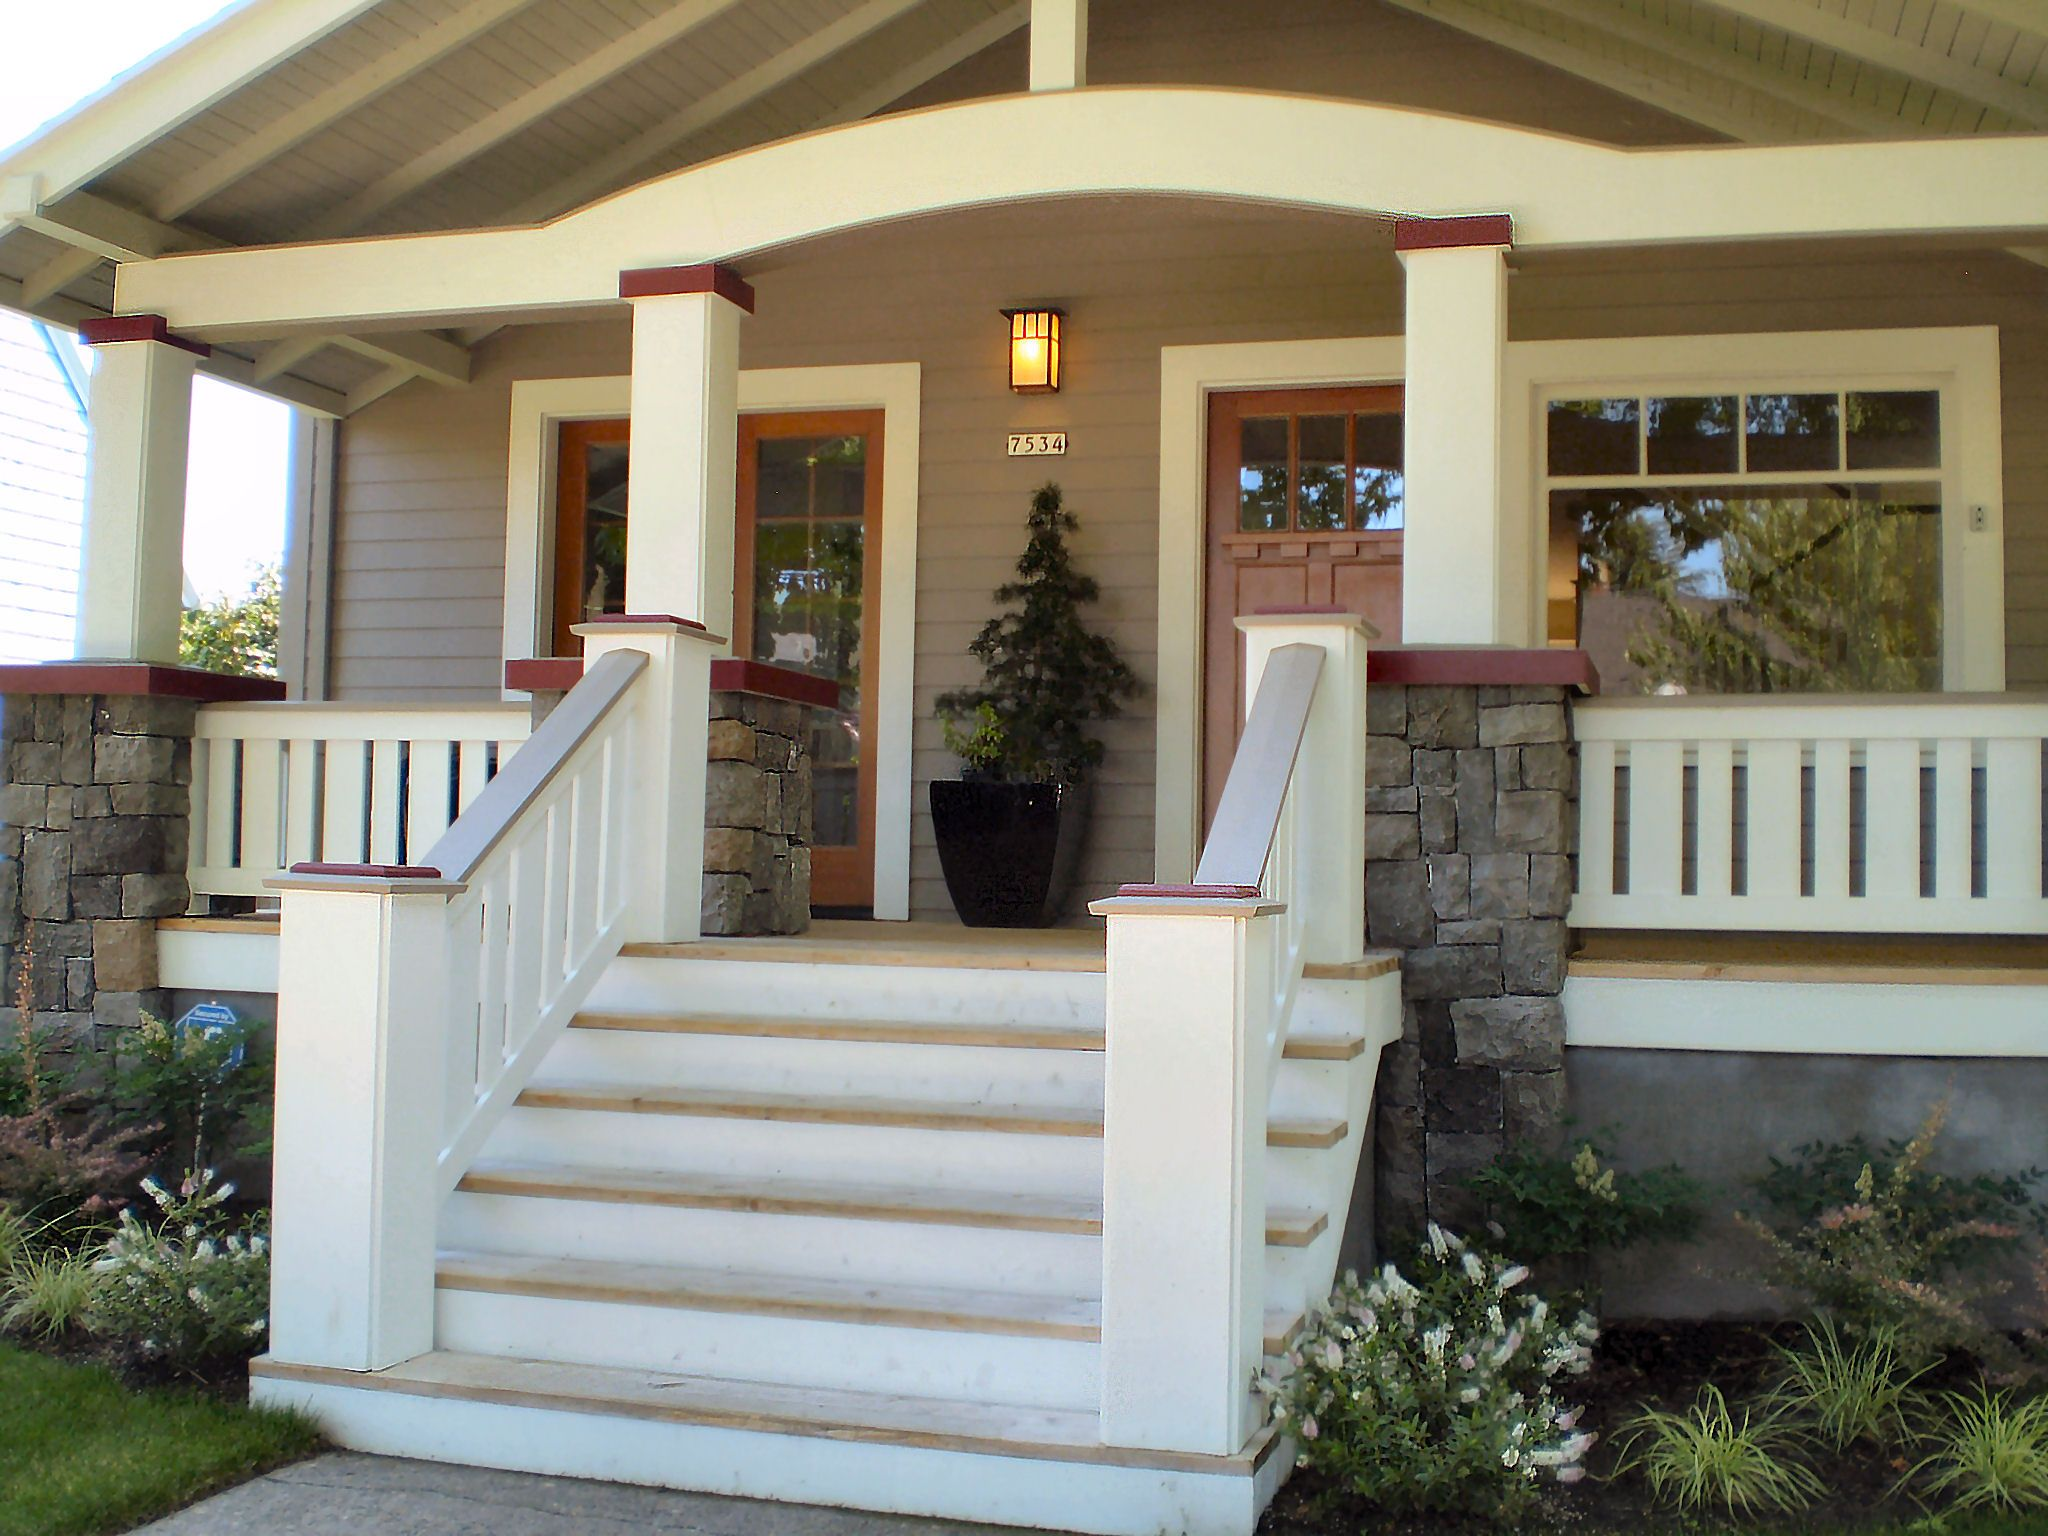 Wood porch railings and columns front porch pinterest for House plans with columns and porches